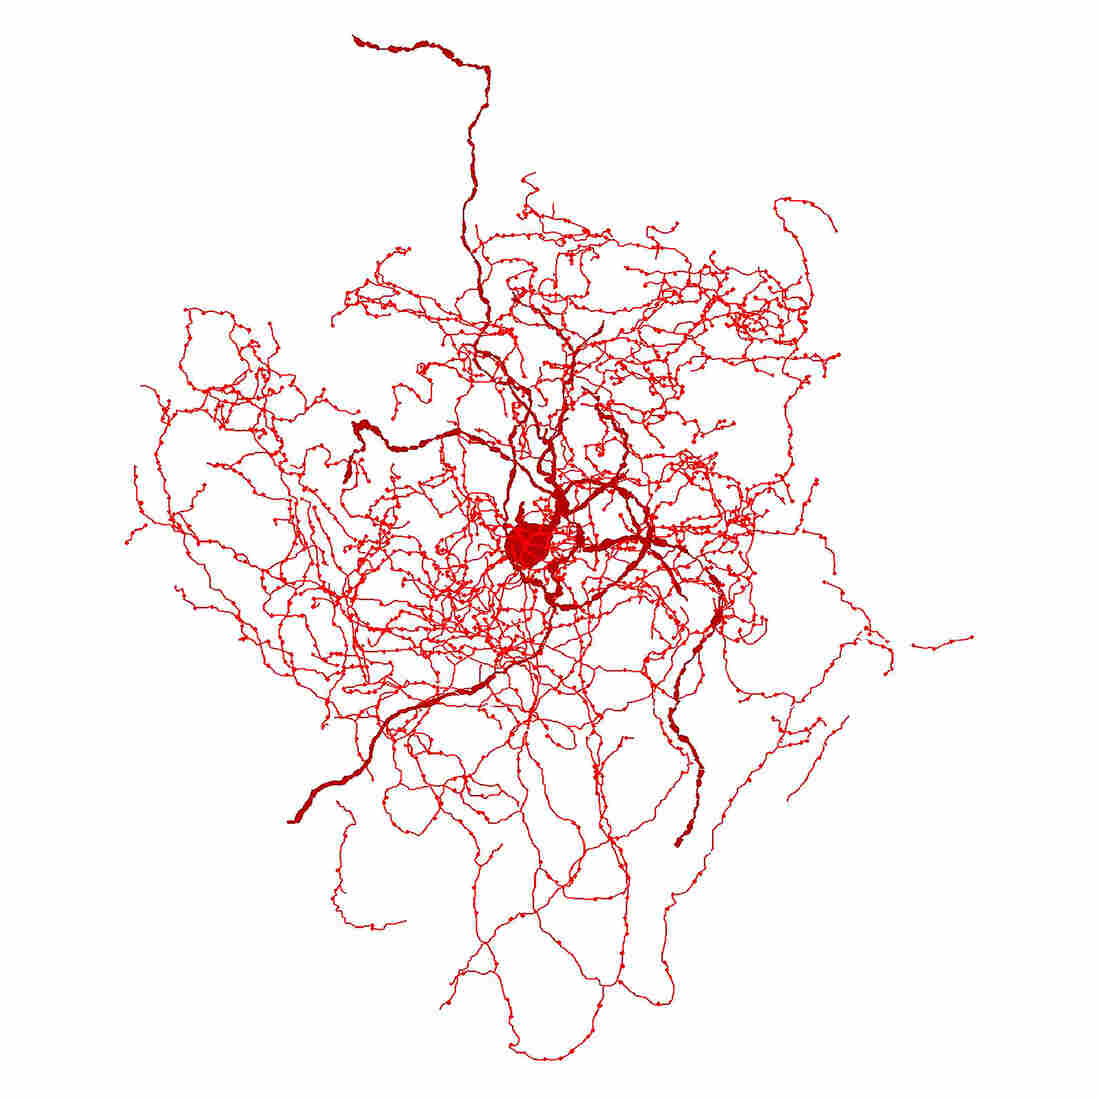 Meet the Rosehip Neuron: A Newly Discovered Cell in the Human Brain